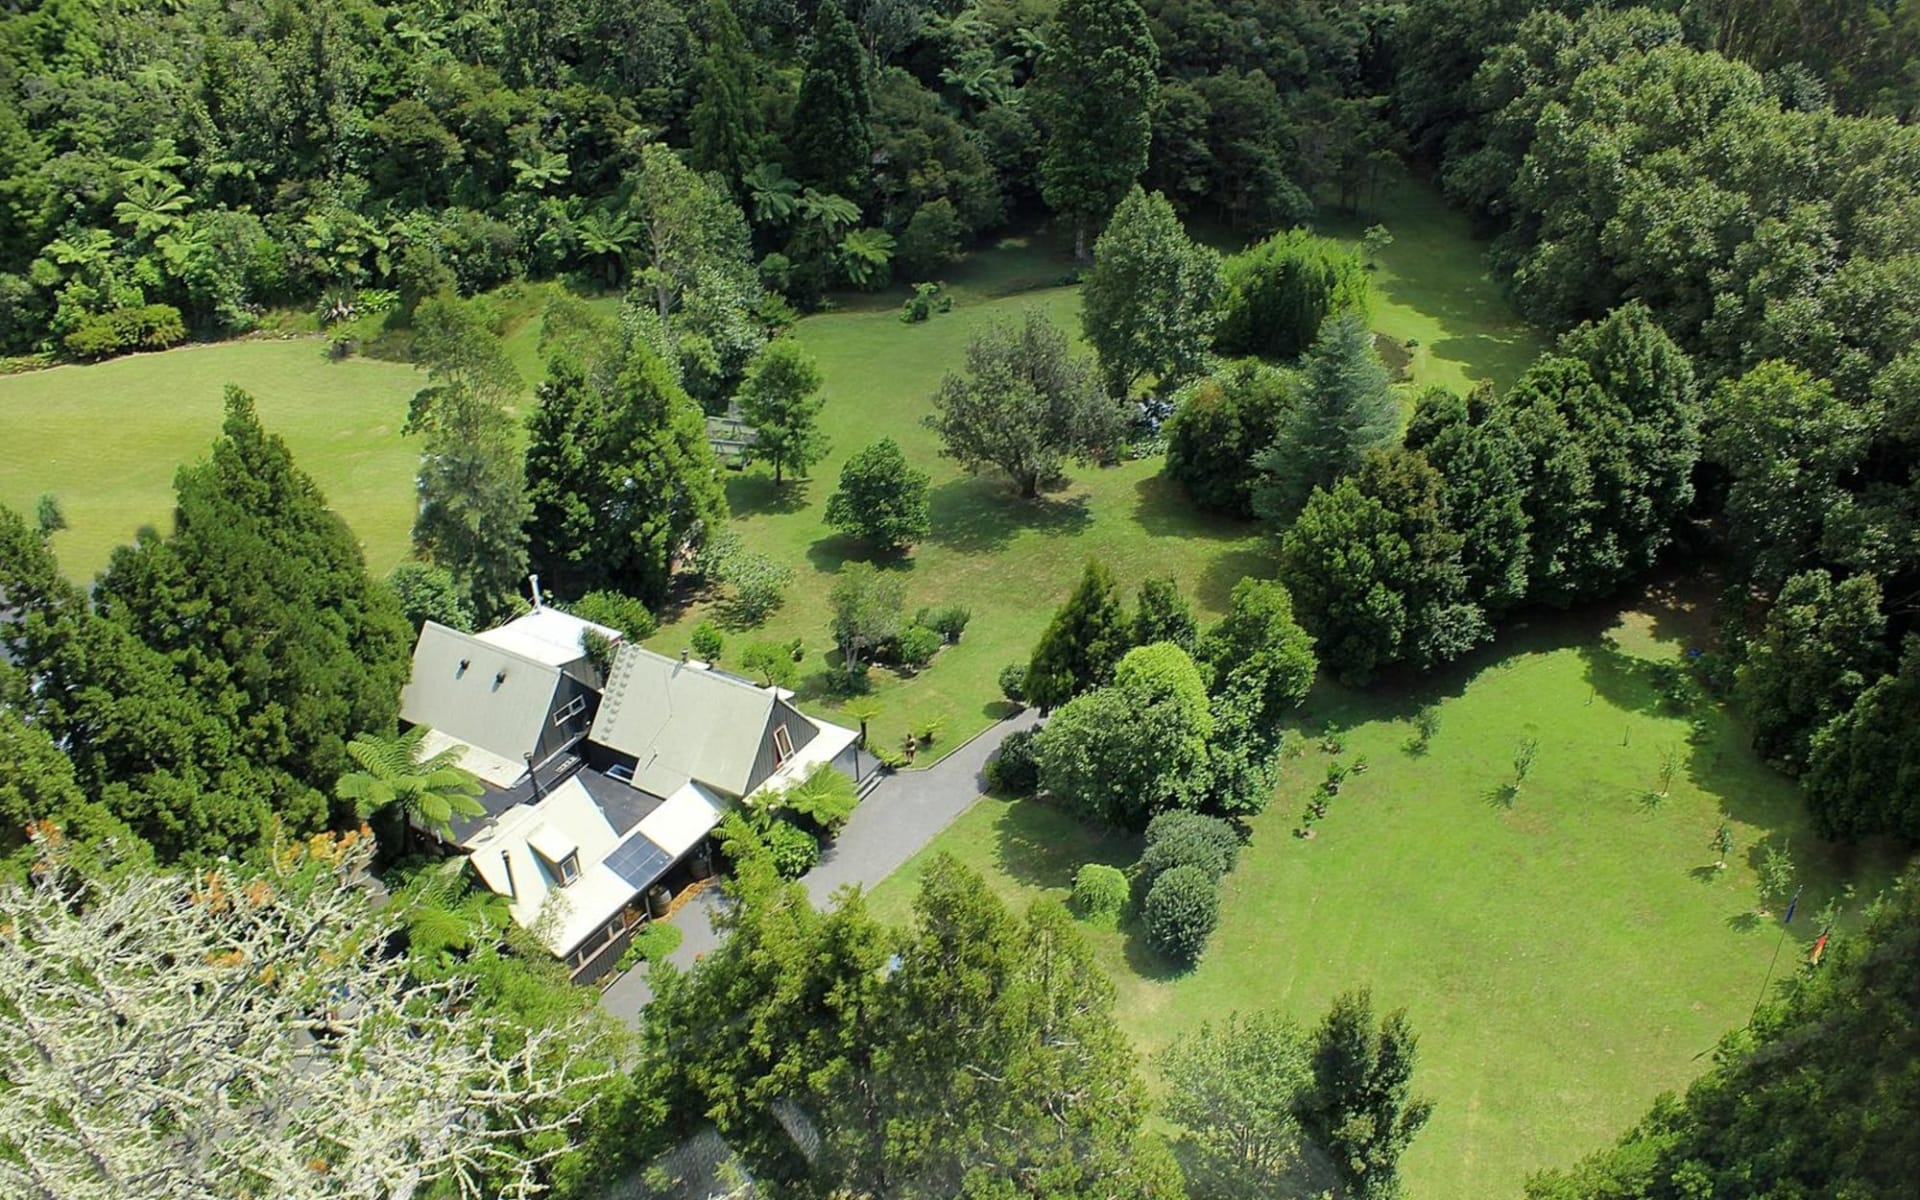 Bushland Park Lodge in Whangamata:  2 Bushland Park Lodge & Retreat air 2014 ss